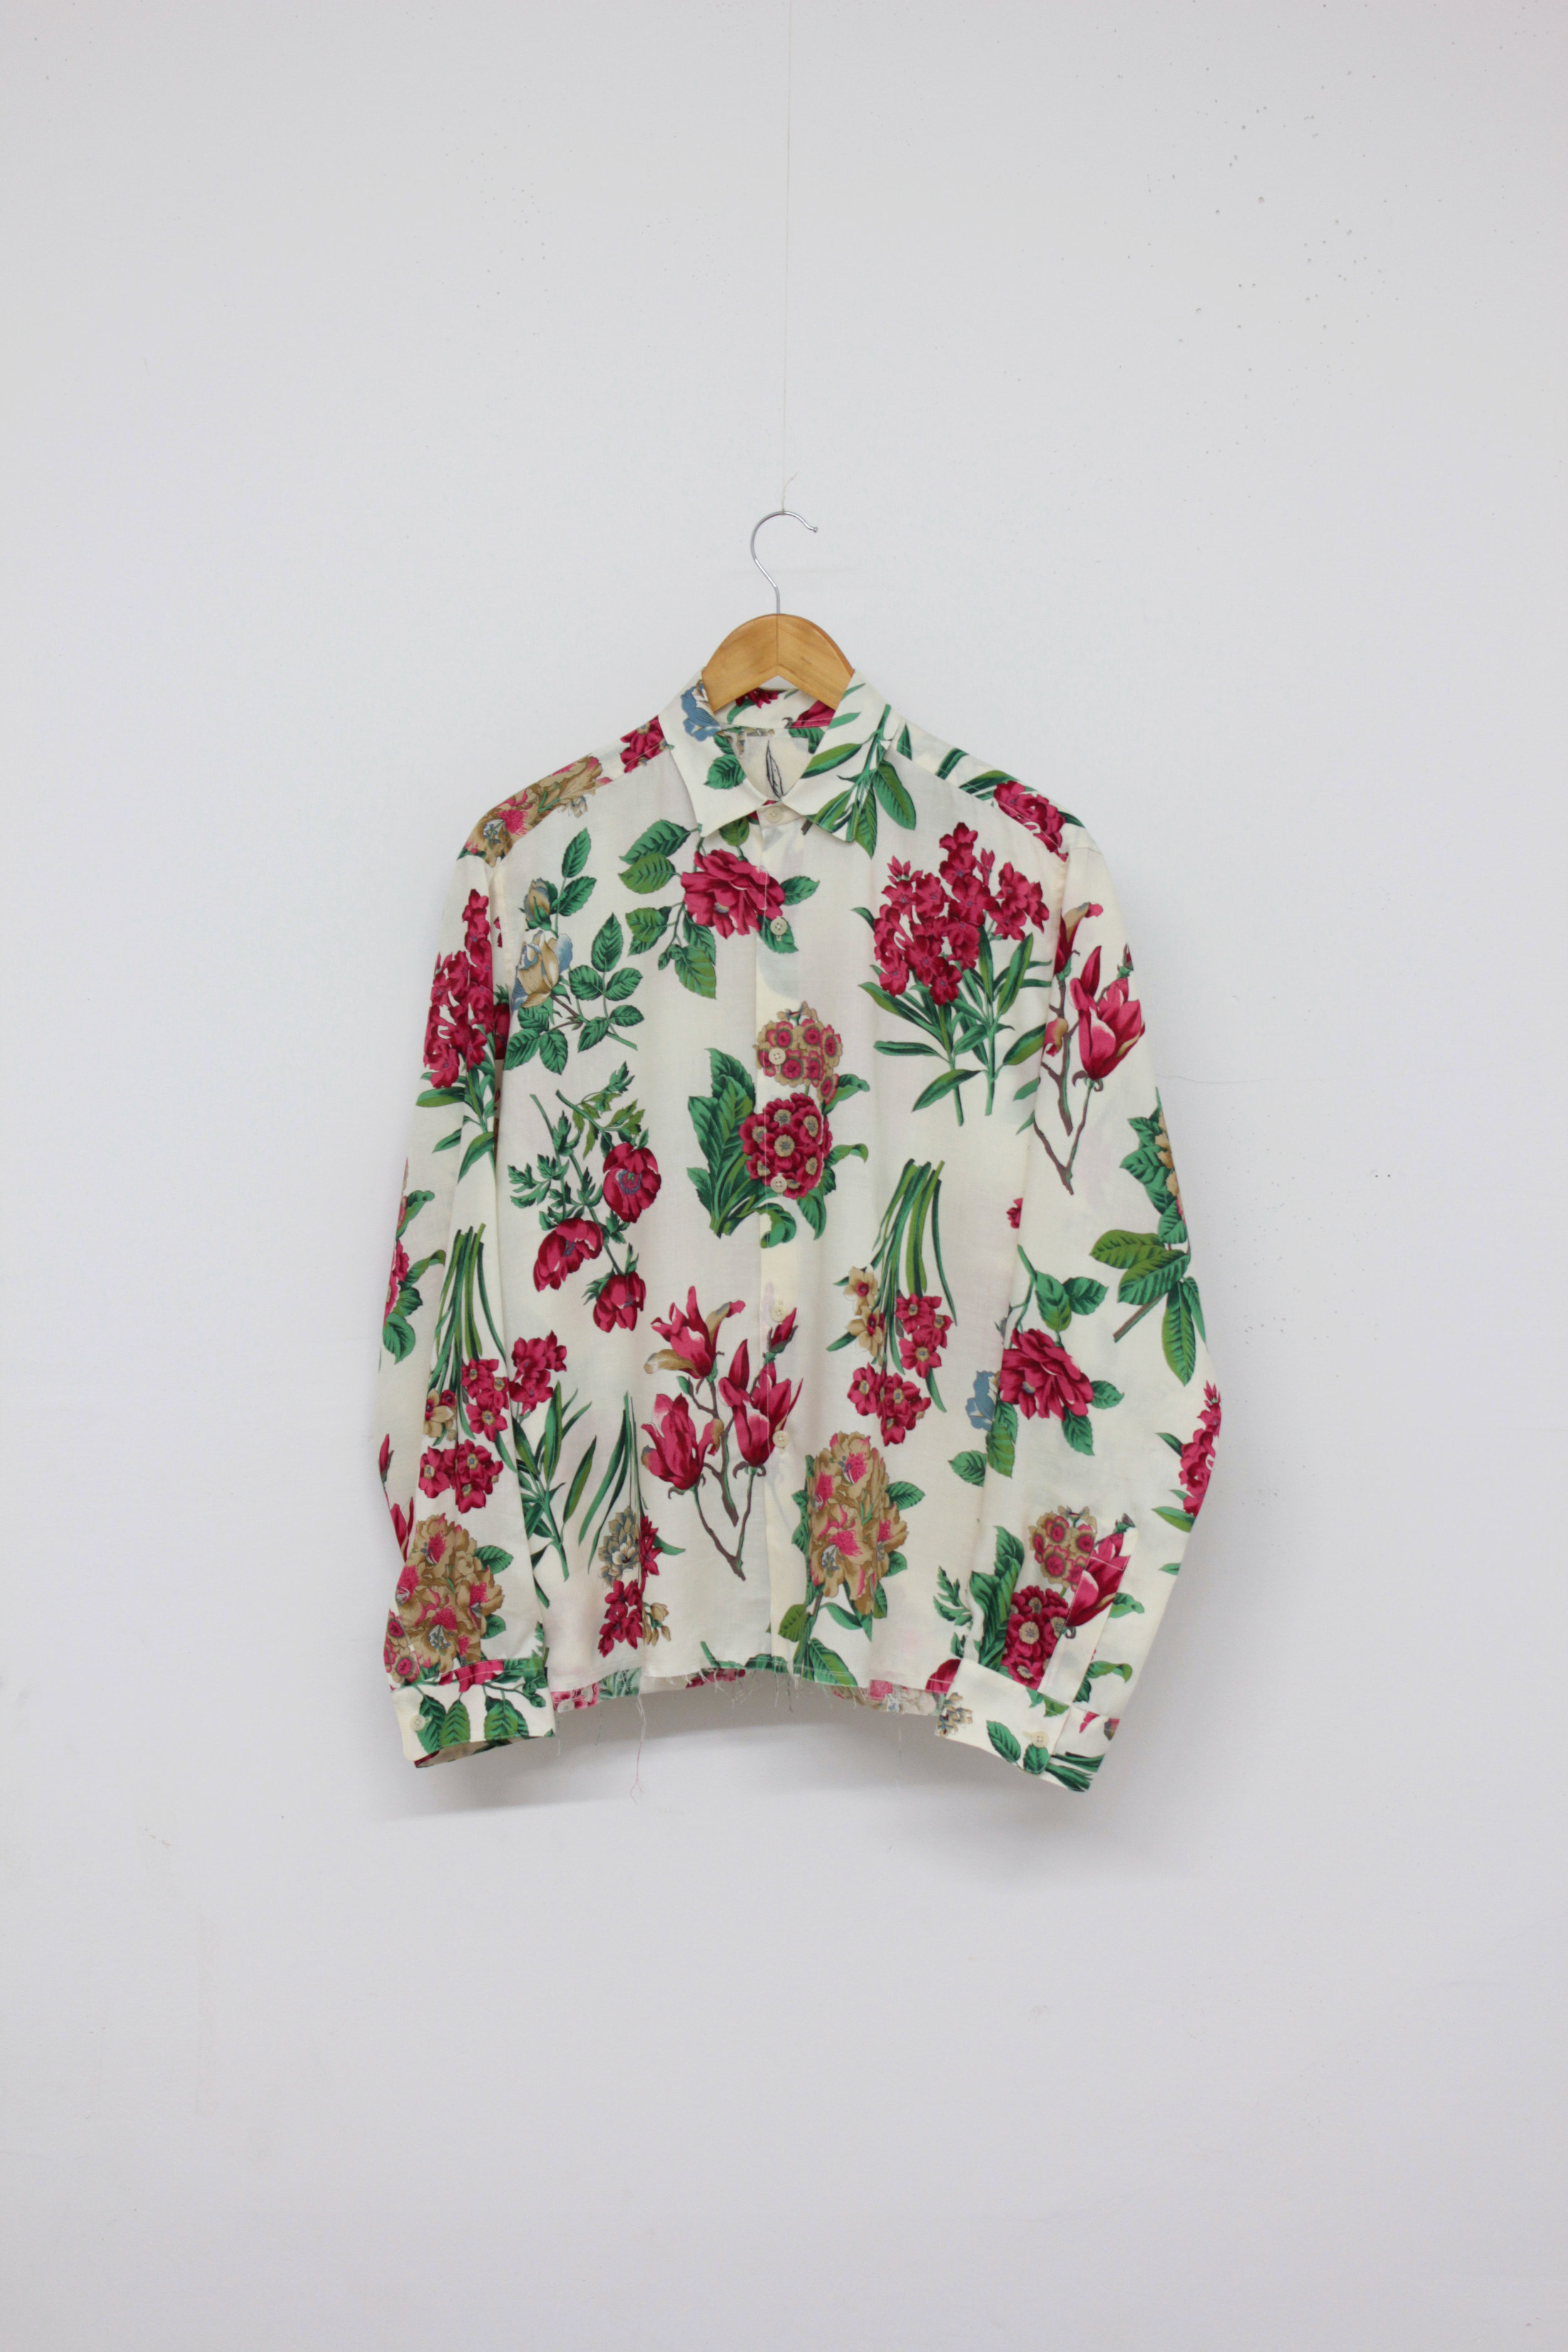 The Horticulturist Shirt - Size small in a vintage screen printed rayon.